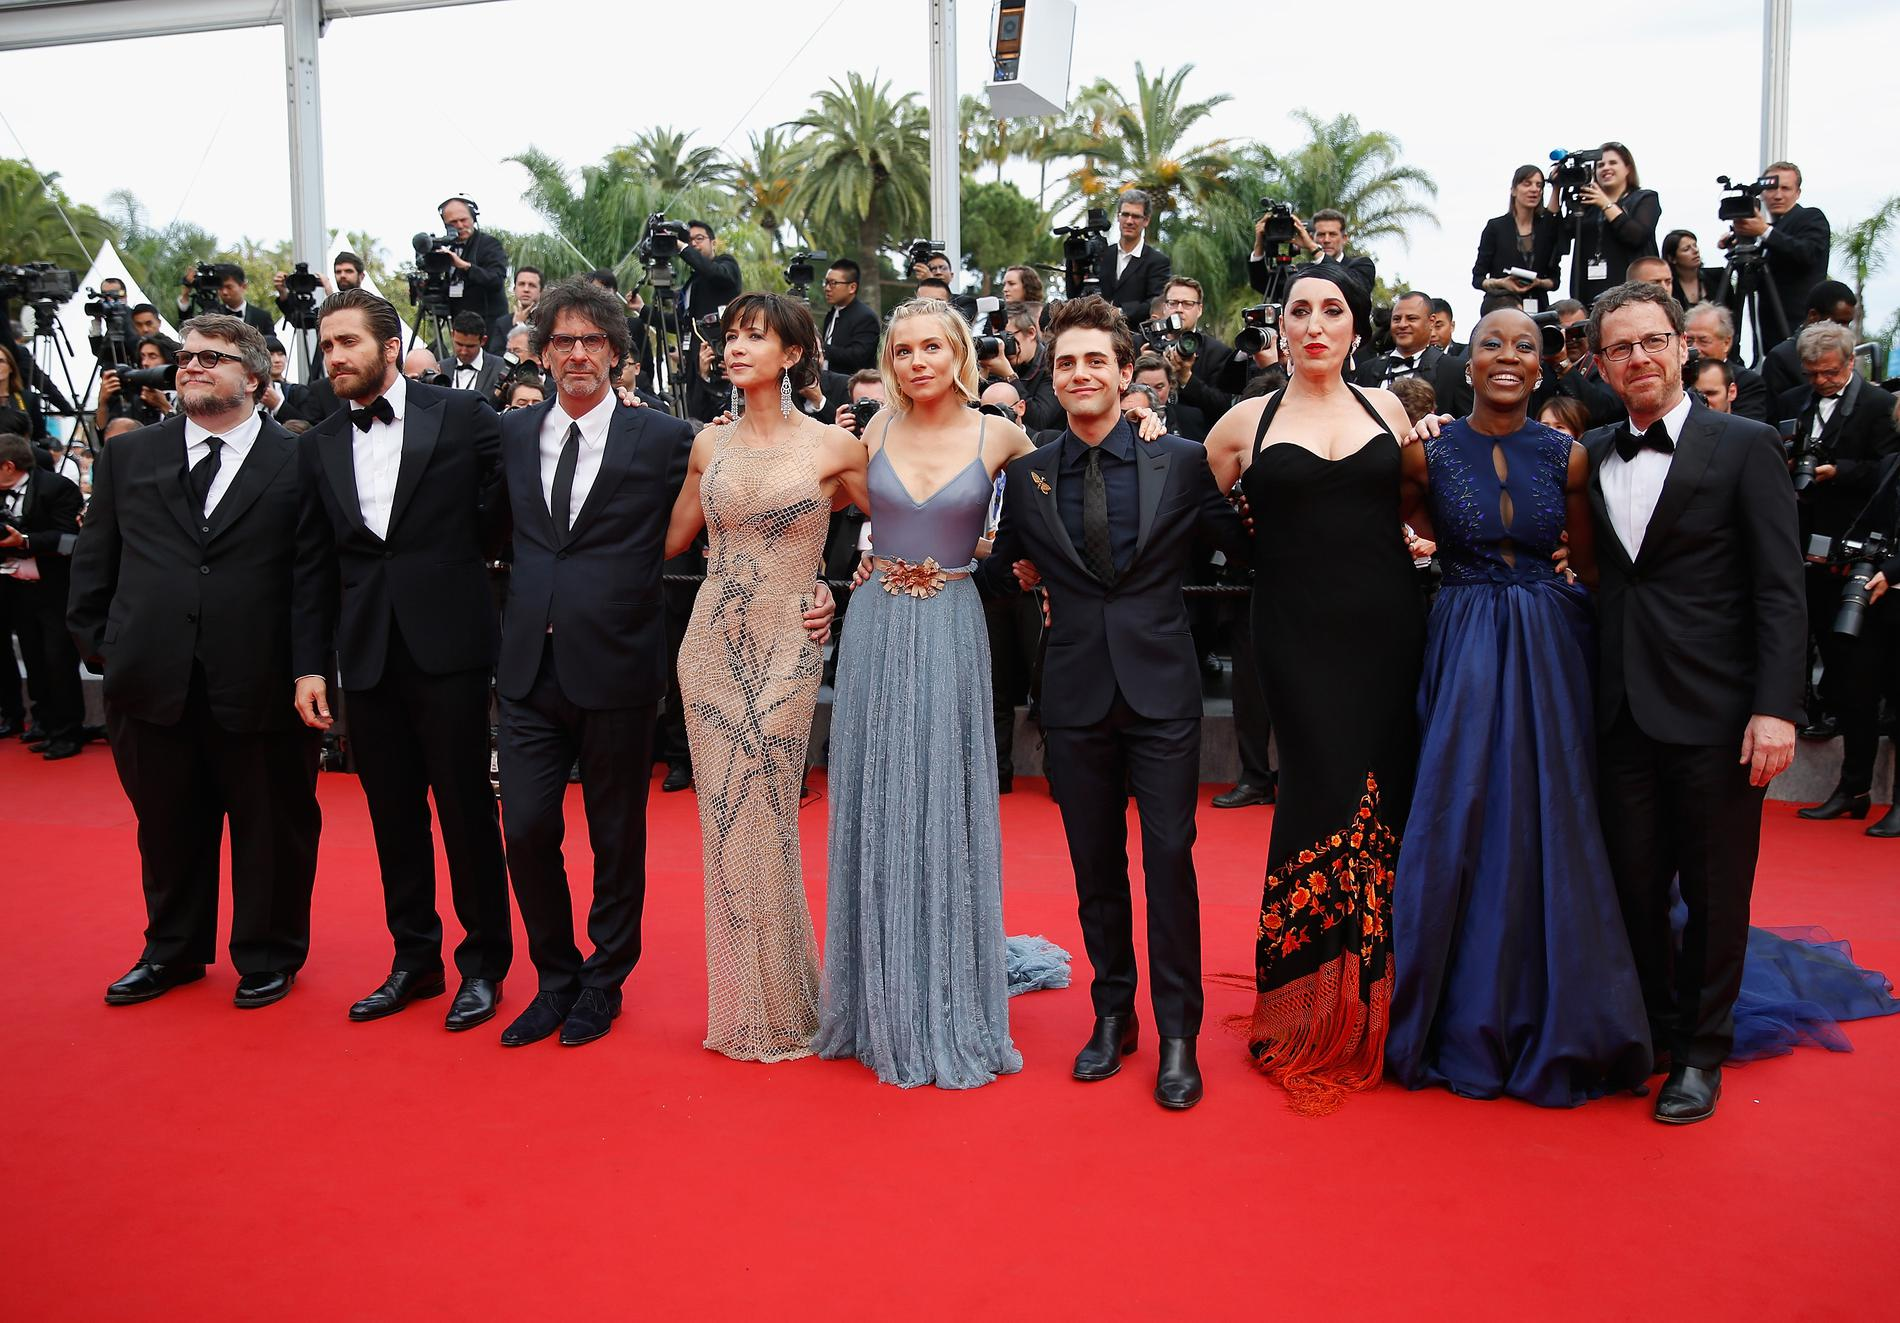 The 68th Cannes Film Festival Jury (L-R):